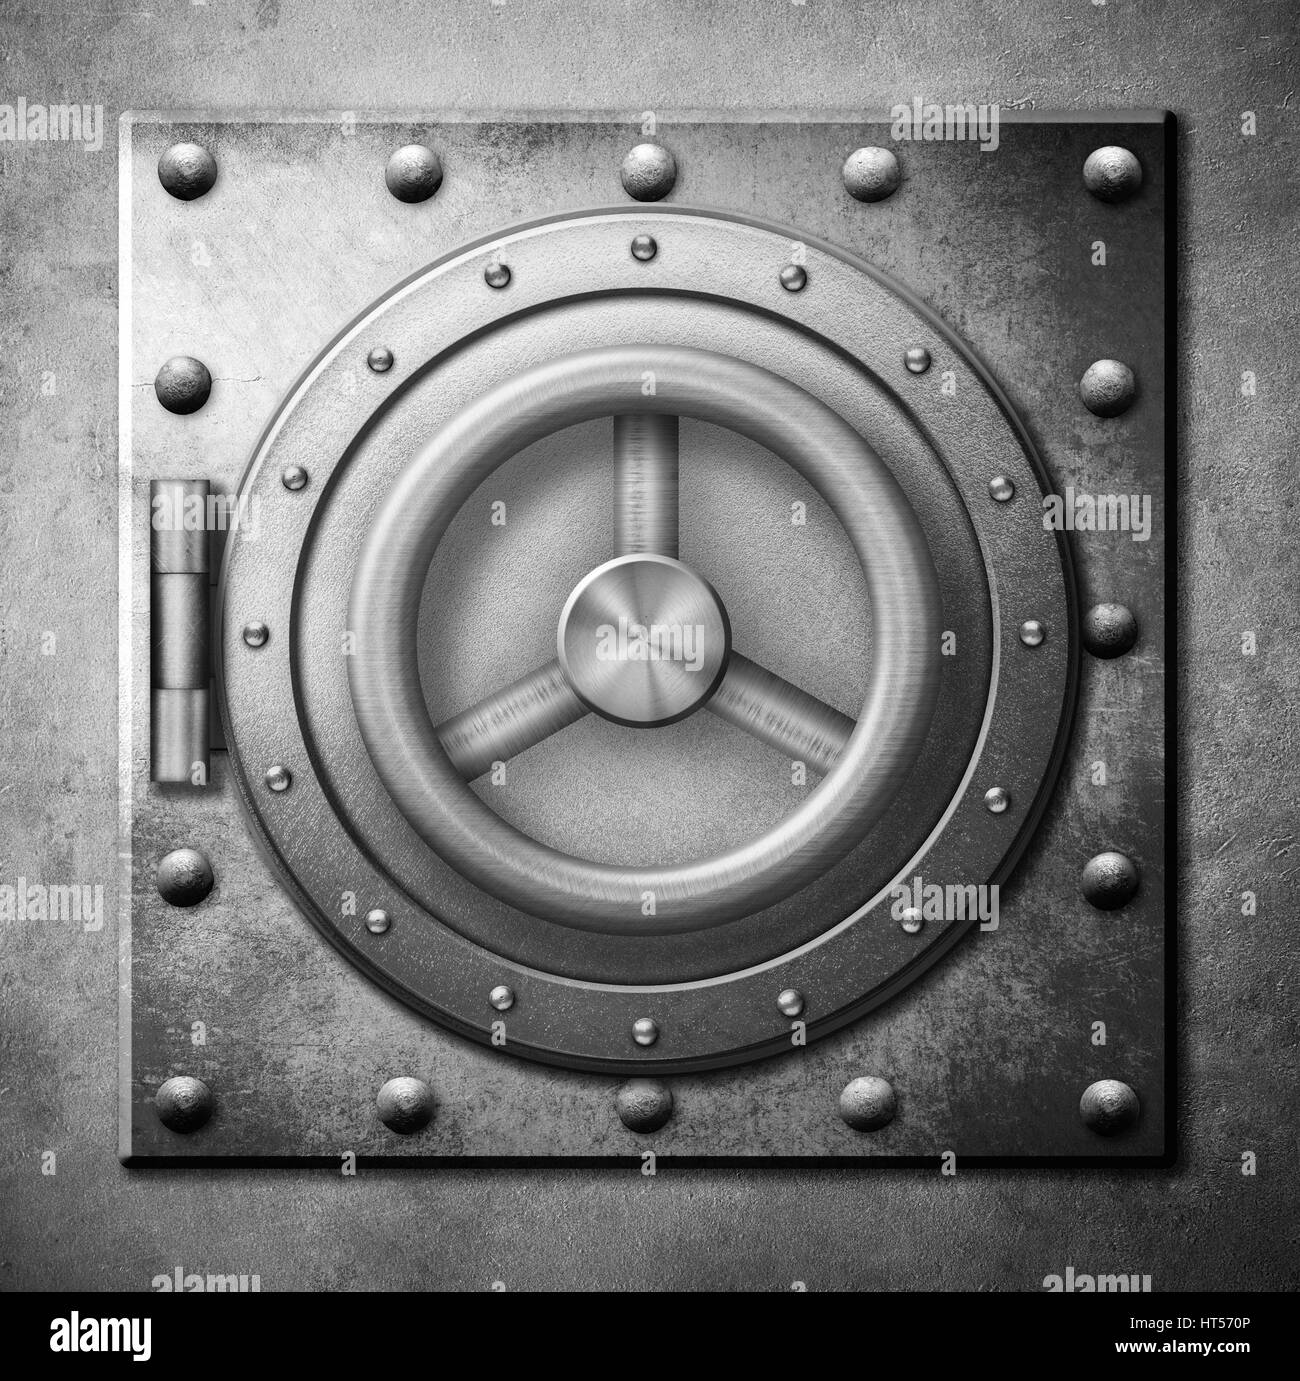 metal safe door 3d illustration or icon - Stock Image